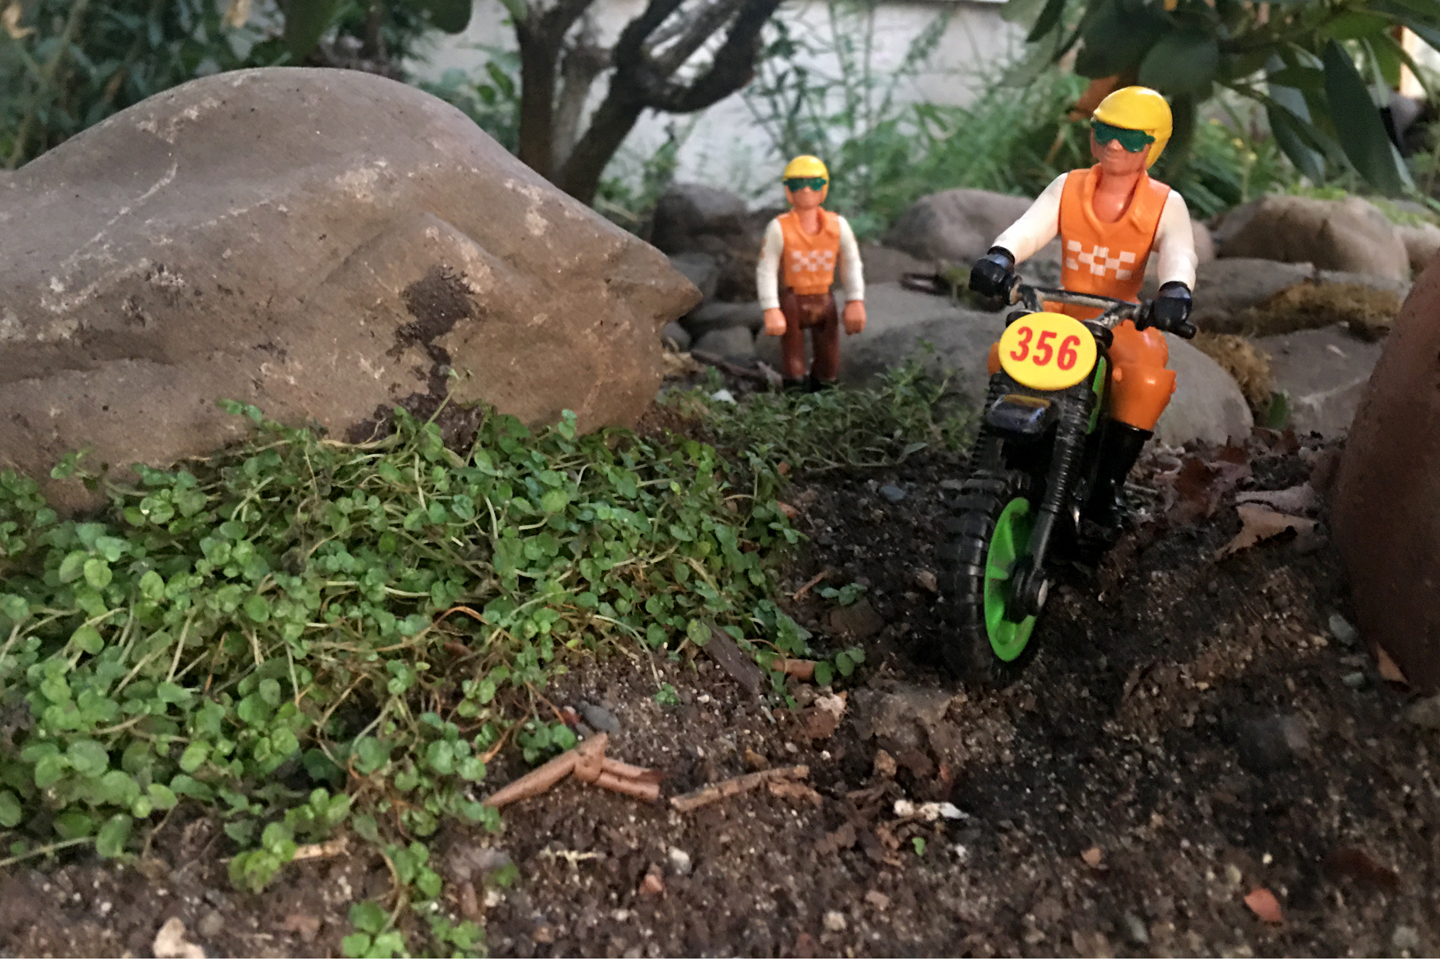 Dean and Vince of the Fisher-Price Adventure People Cycle Racing Team set